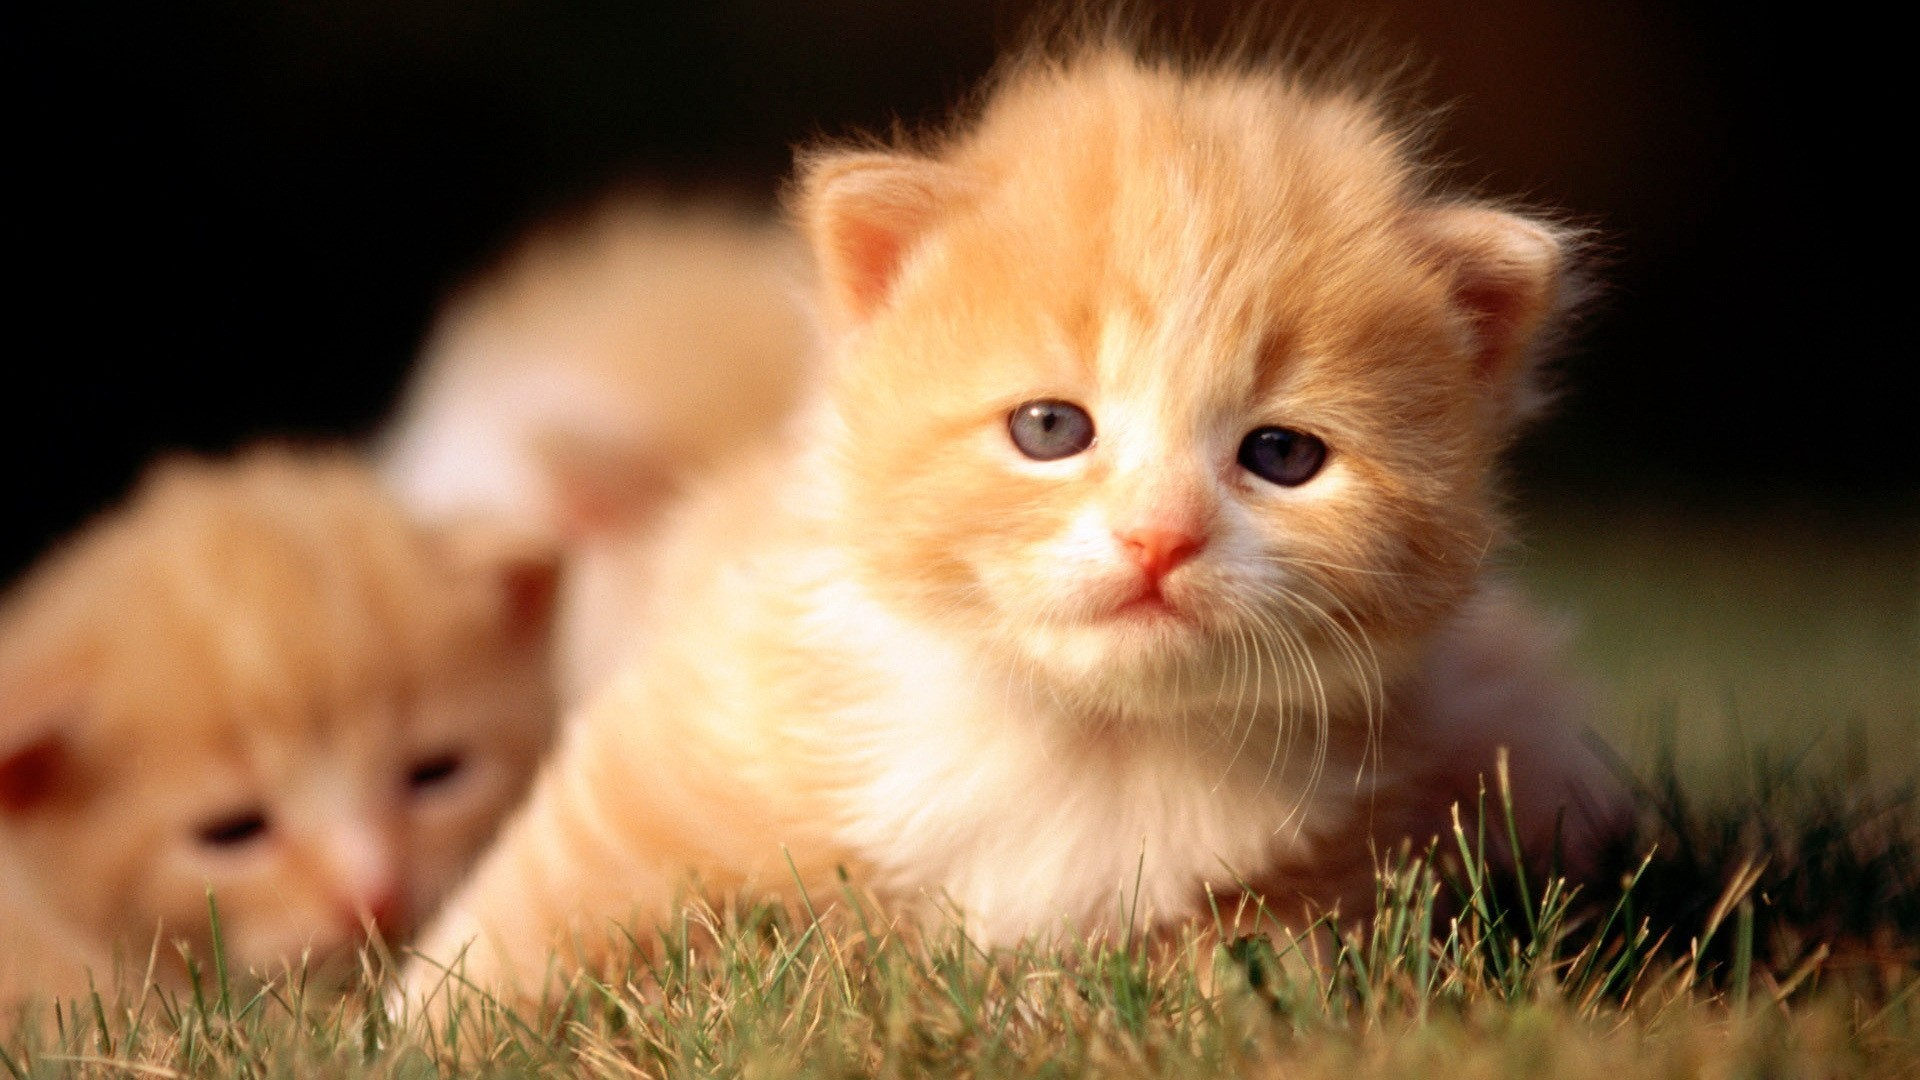 Baby kittens wallpaper 63 images 1920x1080 cute kitten wallpaper free download wallpapers hd pinterest wallpaper free download altavistaventures Choice Image